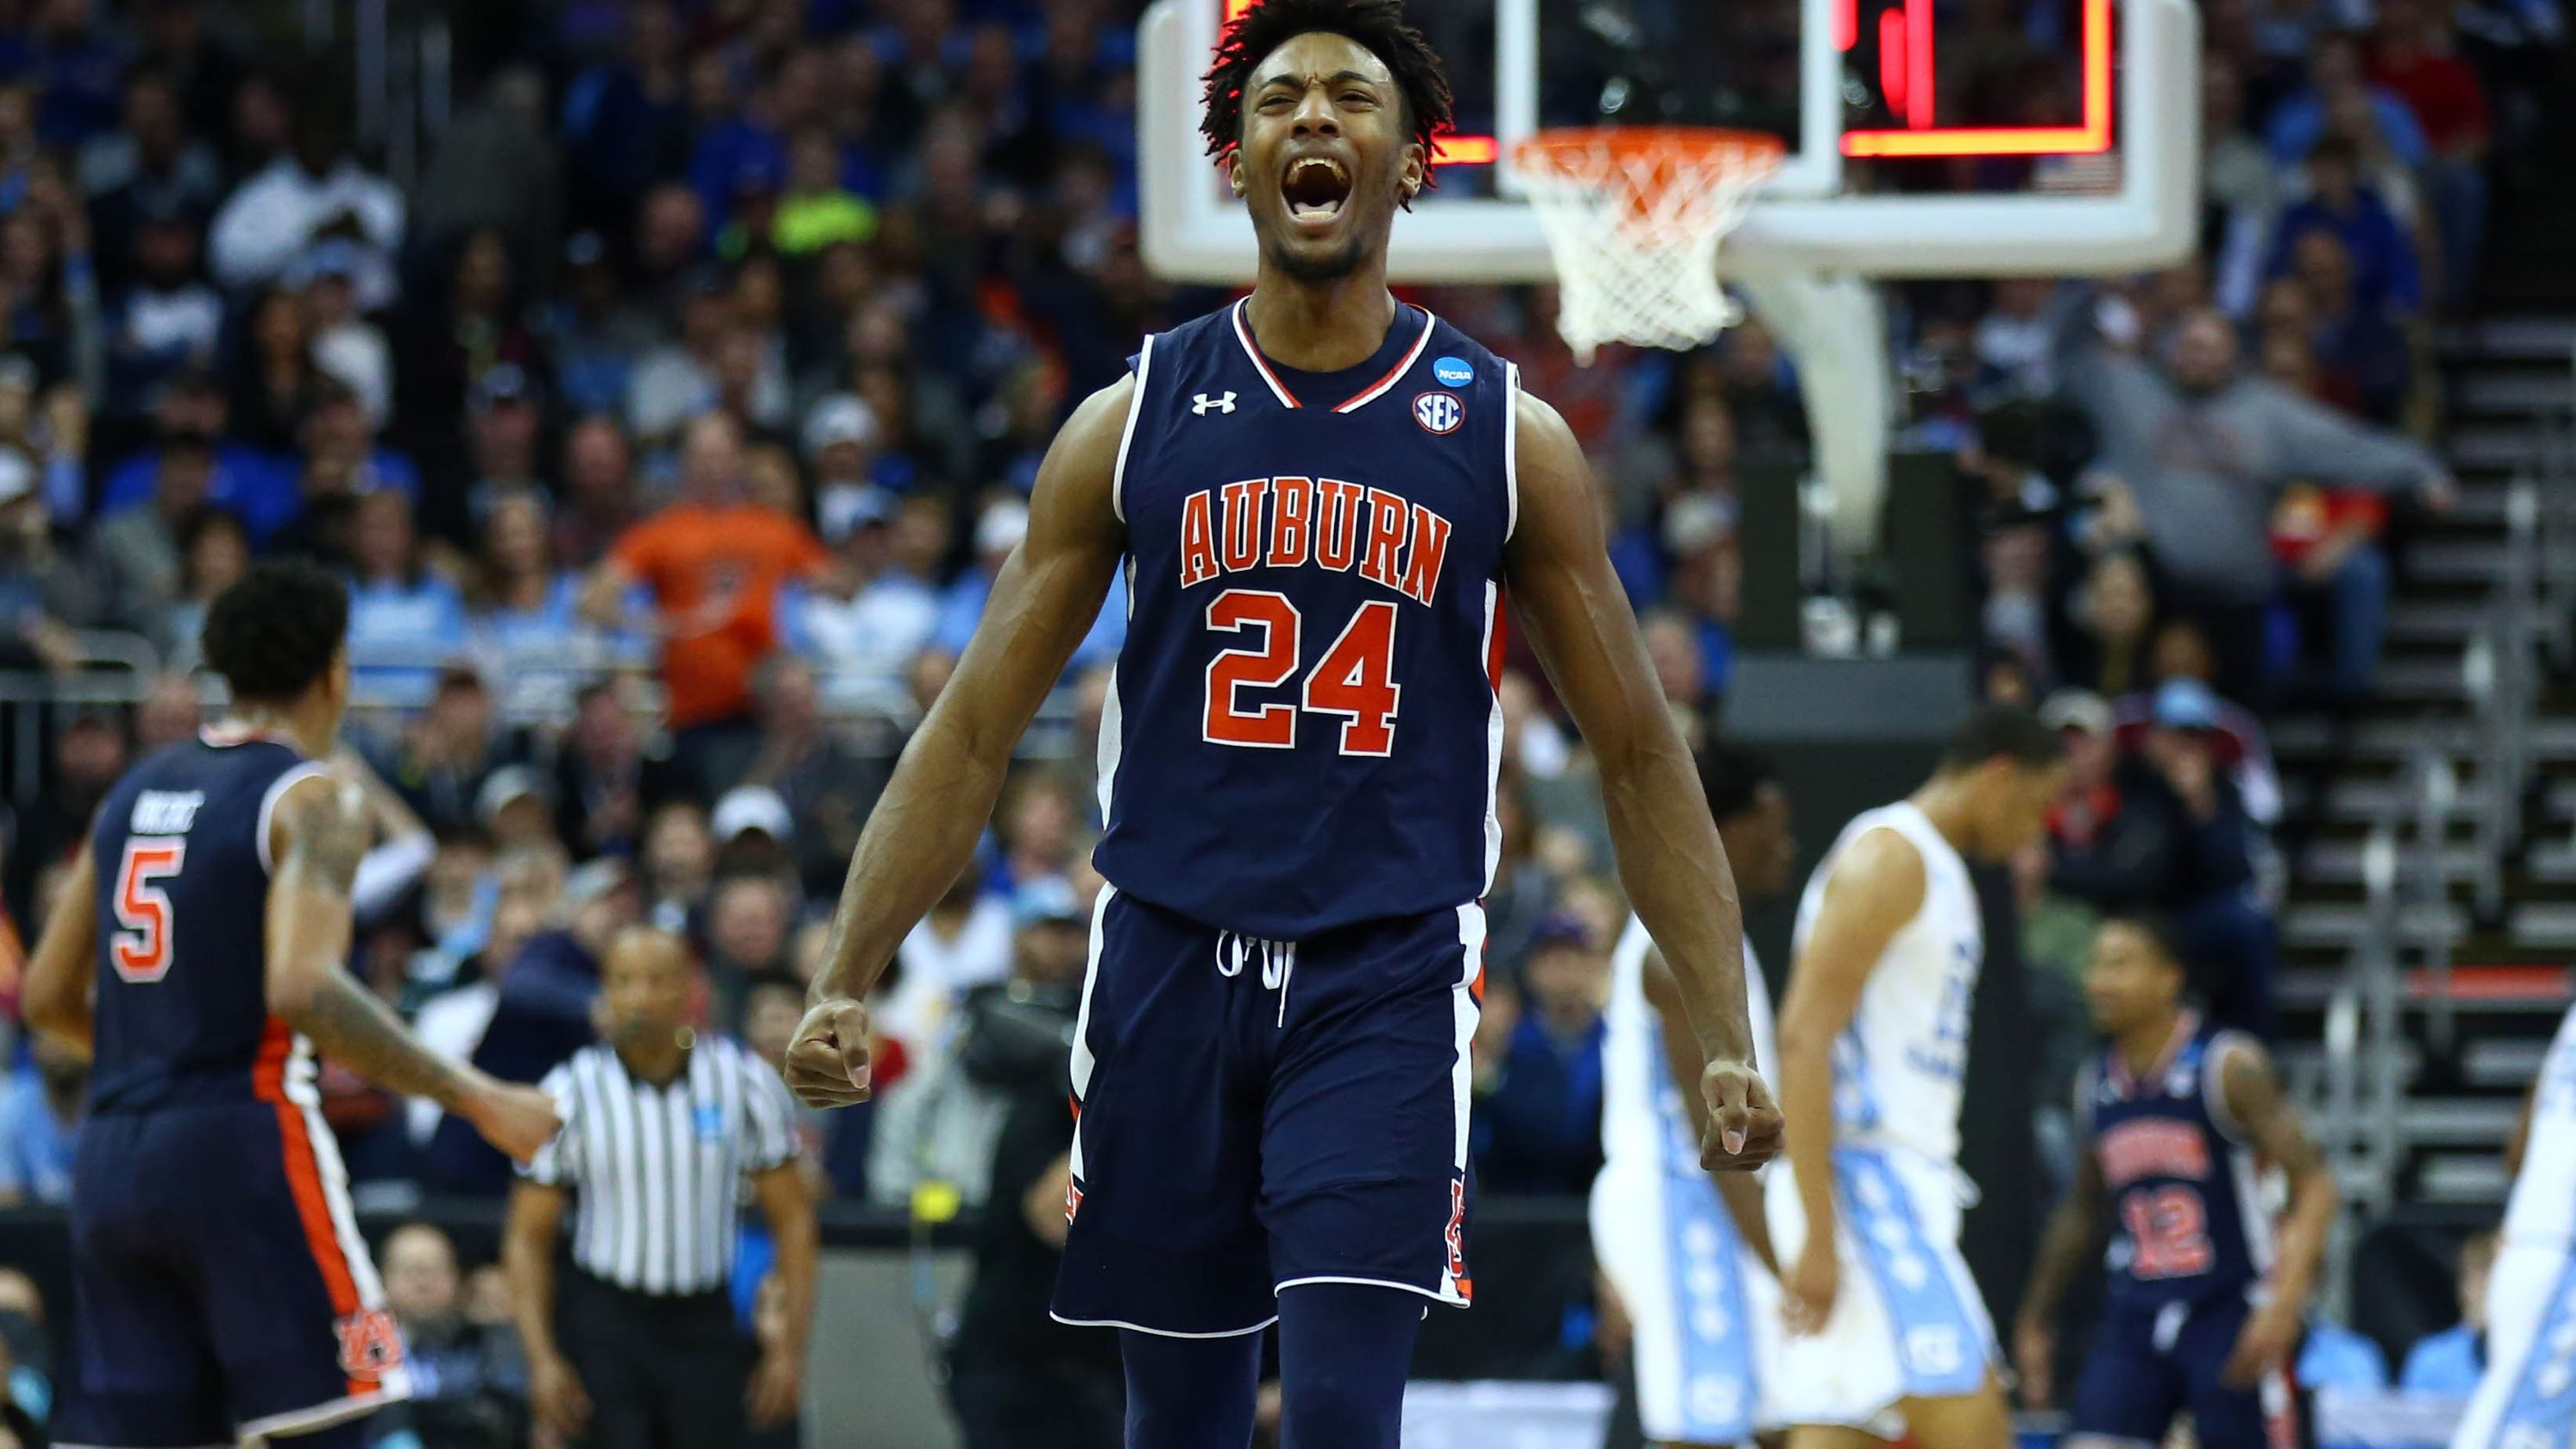 Fifth Seeded Auburn Blows Past Top Seeded North Carolina In